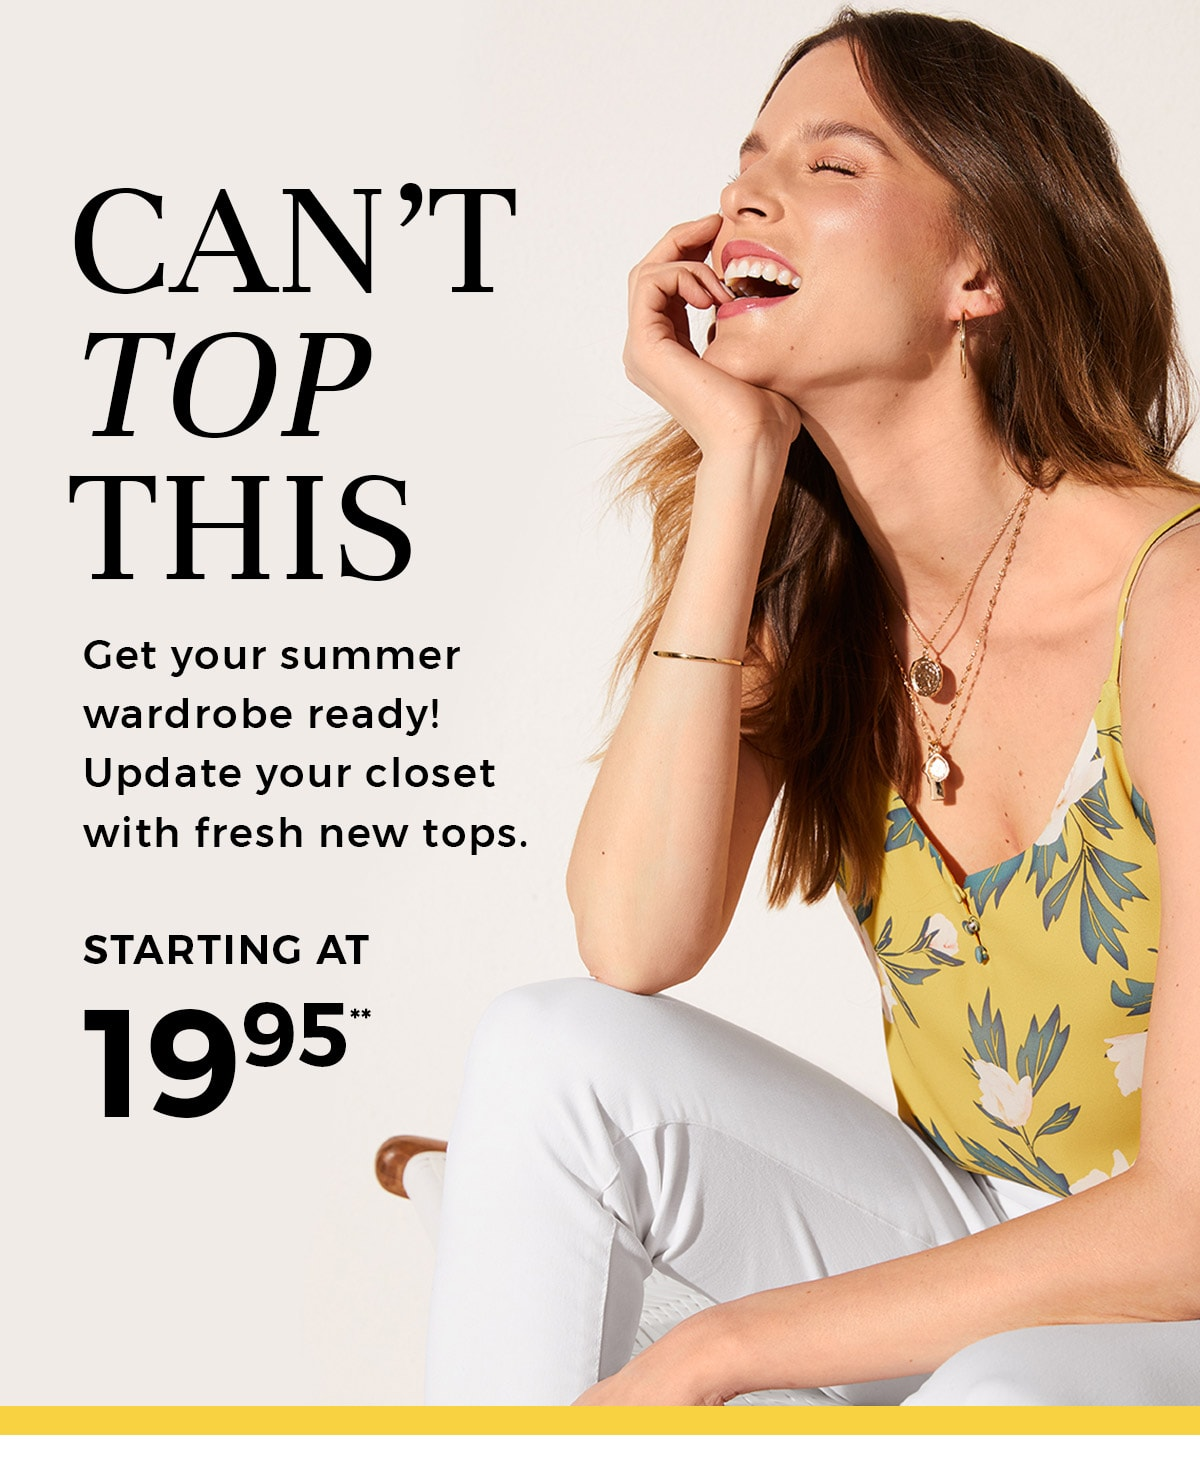 Get your summer wardrobe ready! Update your closet with fresh new tops starting at 19.95